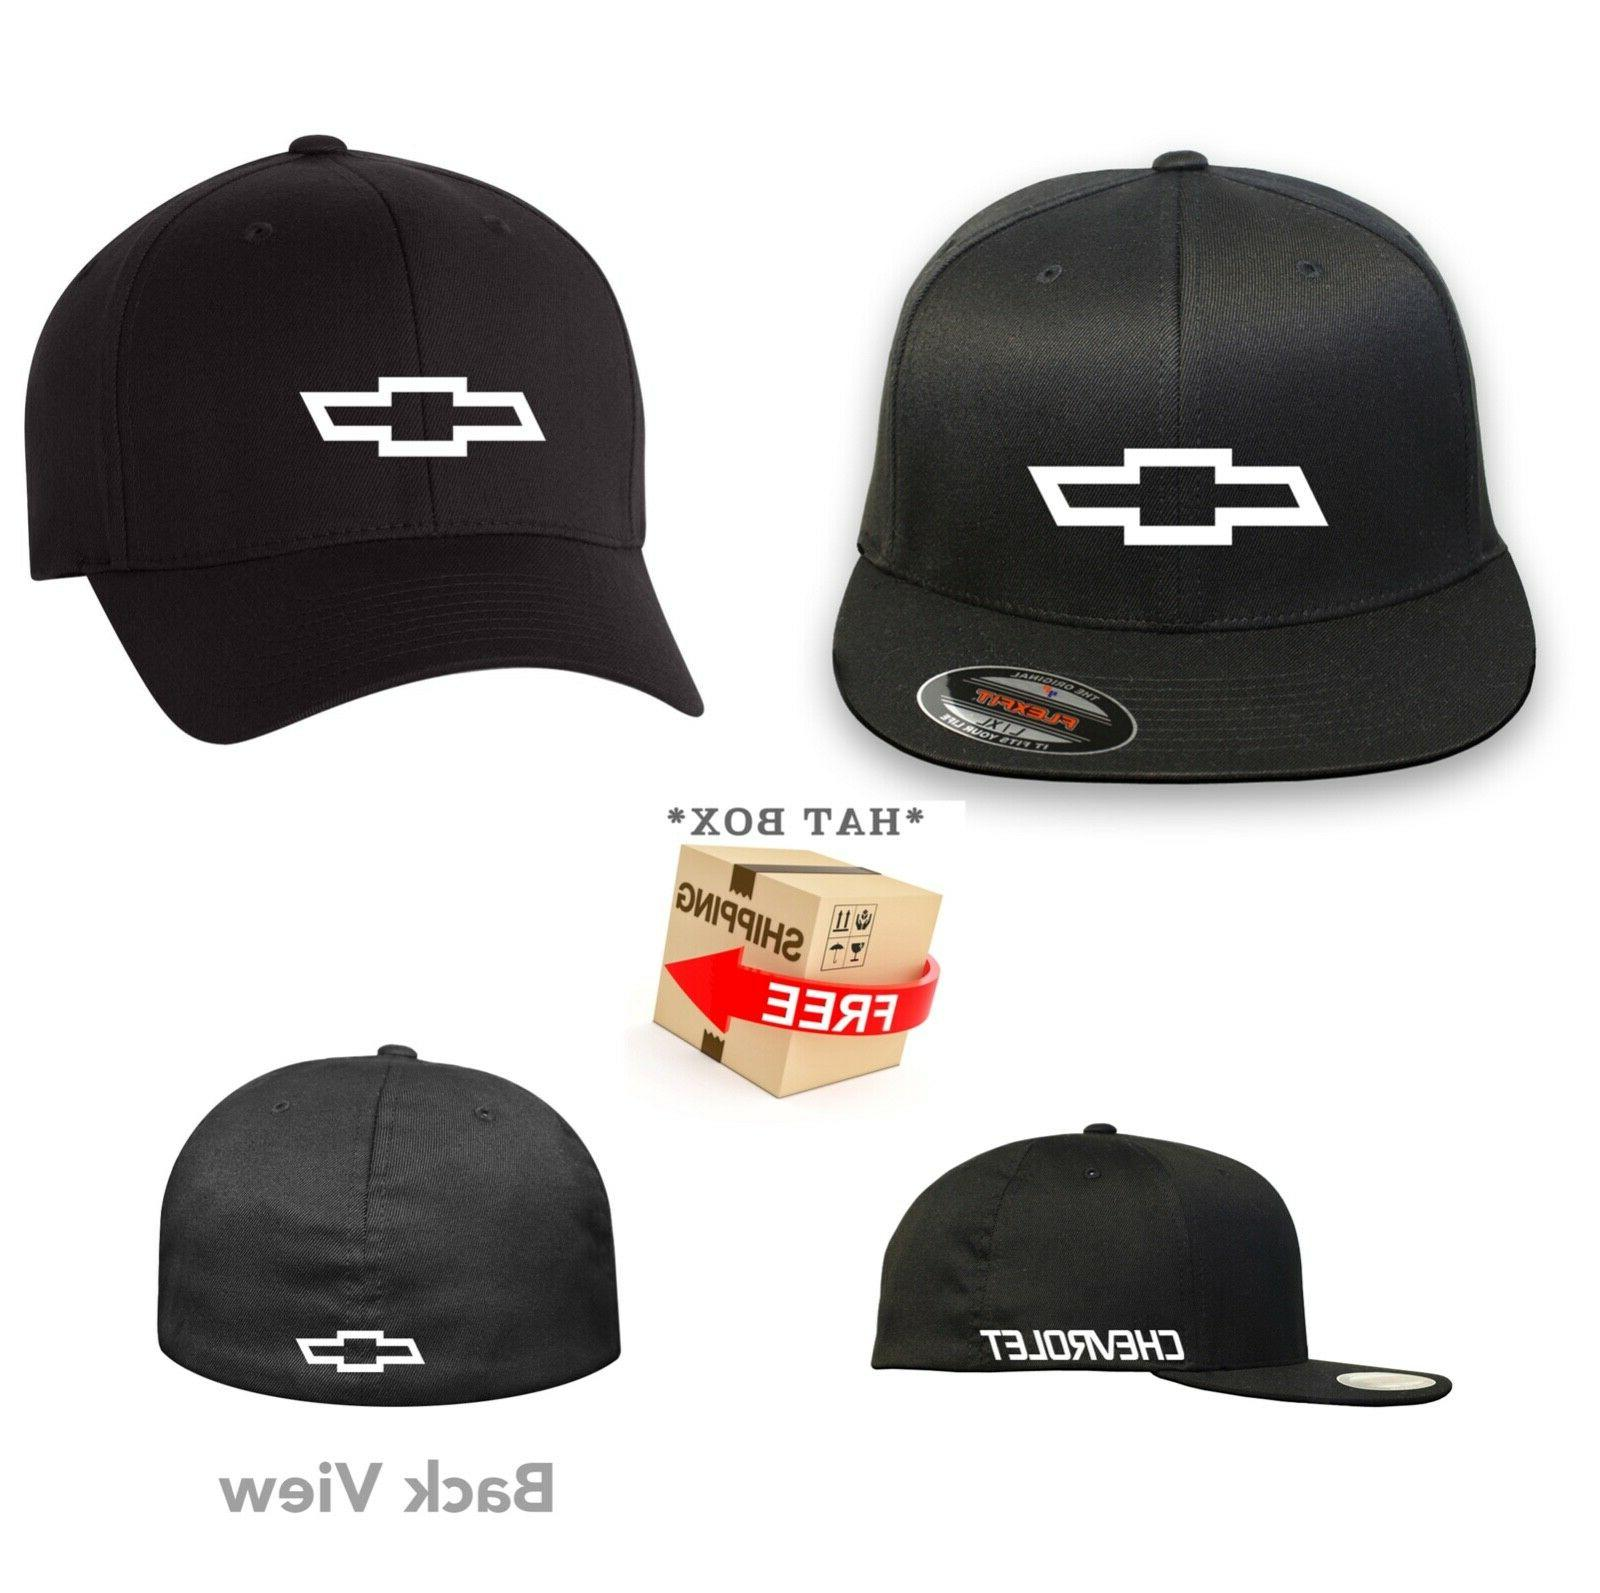 chevy chevrolet flex fit hat curved or